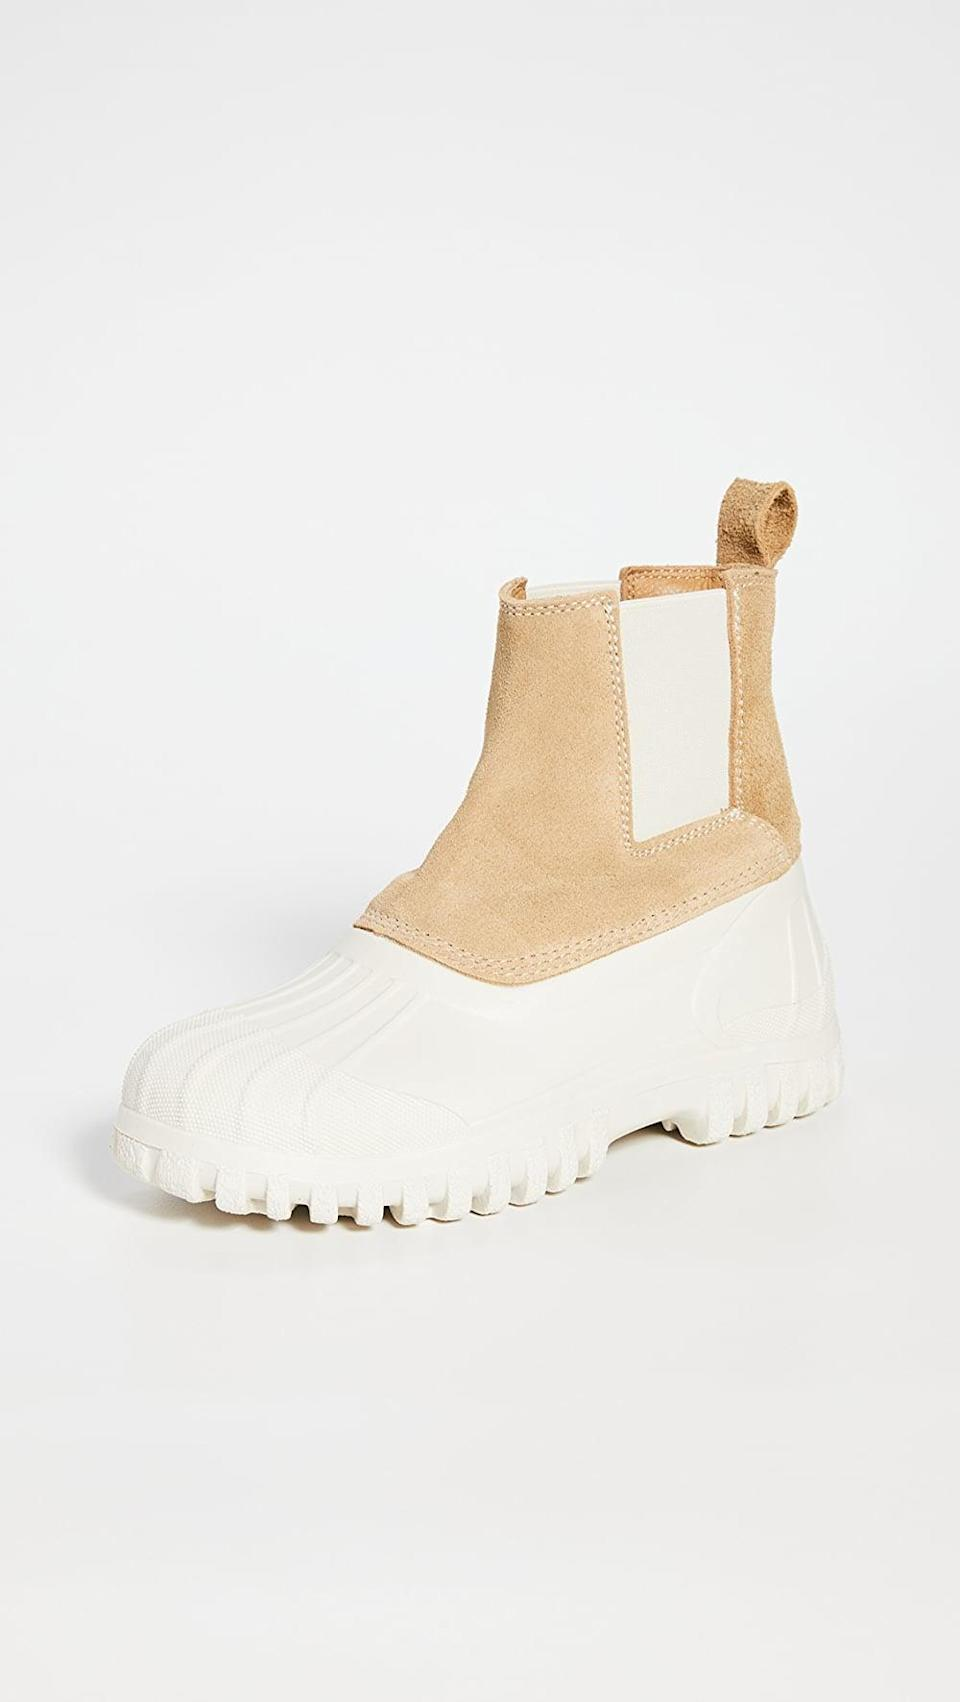 <p>These <span>Diemme Balbi Lug Sole Chelsea Boots</span> ($349) are the perfect addition to a neutral outfit, which we're really feeling this season.</p>